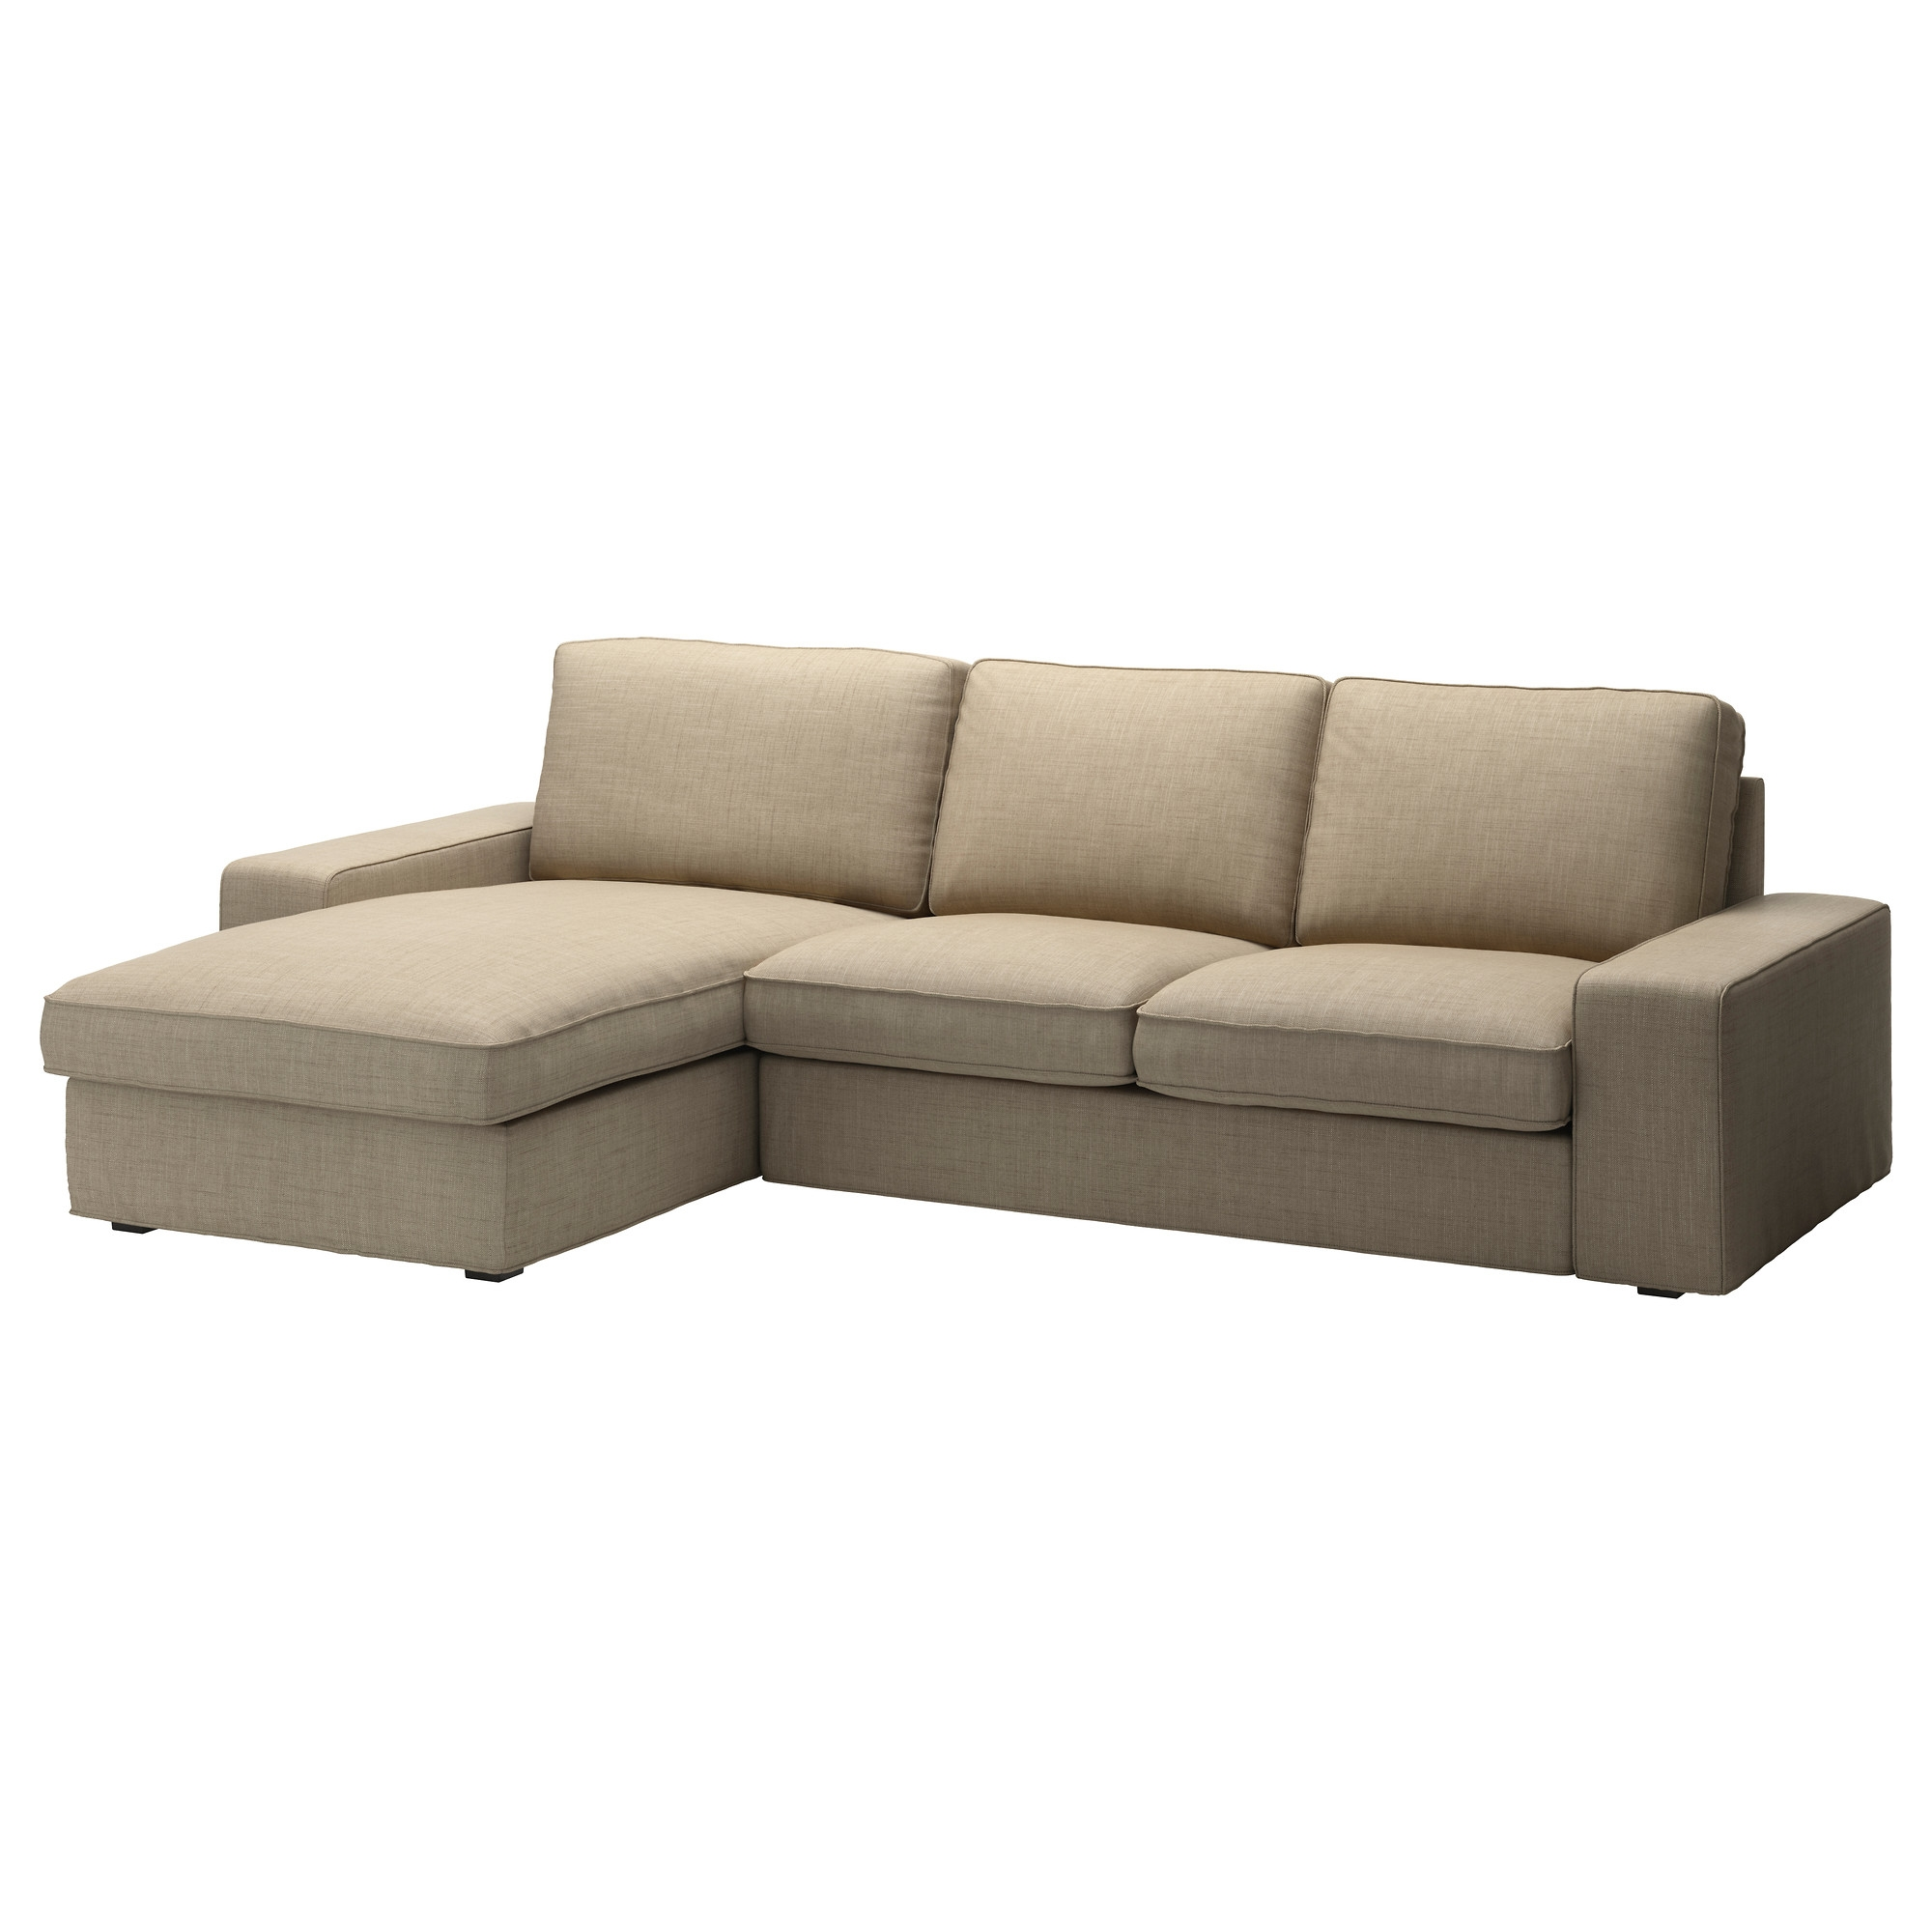 Kivik sof de 2 plazas y chaiselongue for Sofa kivik 2 plazas